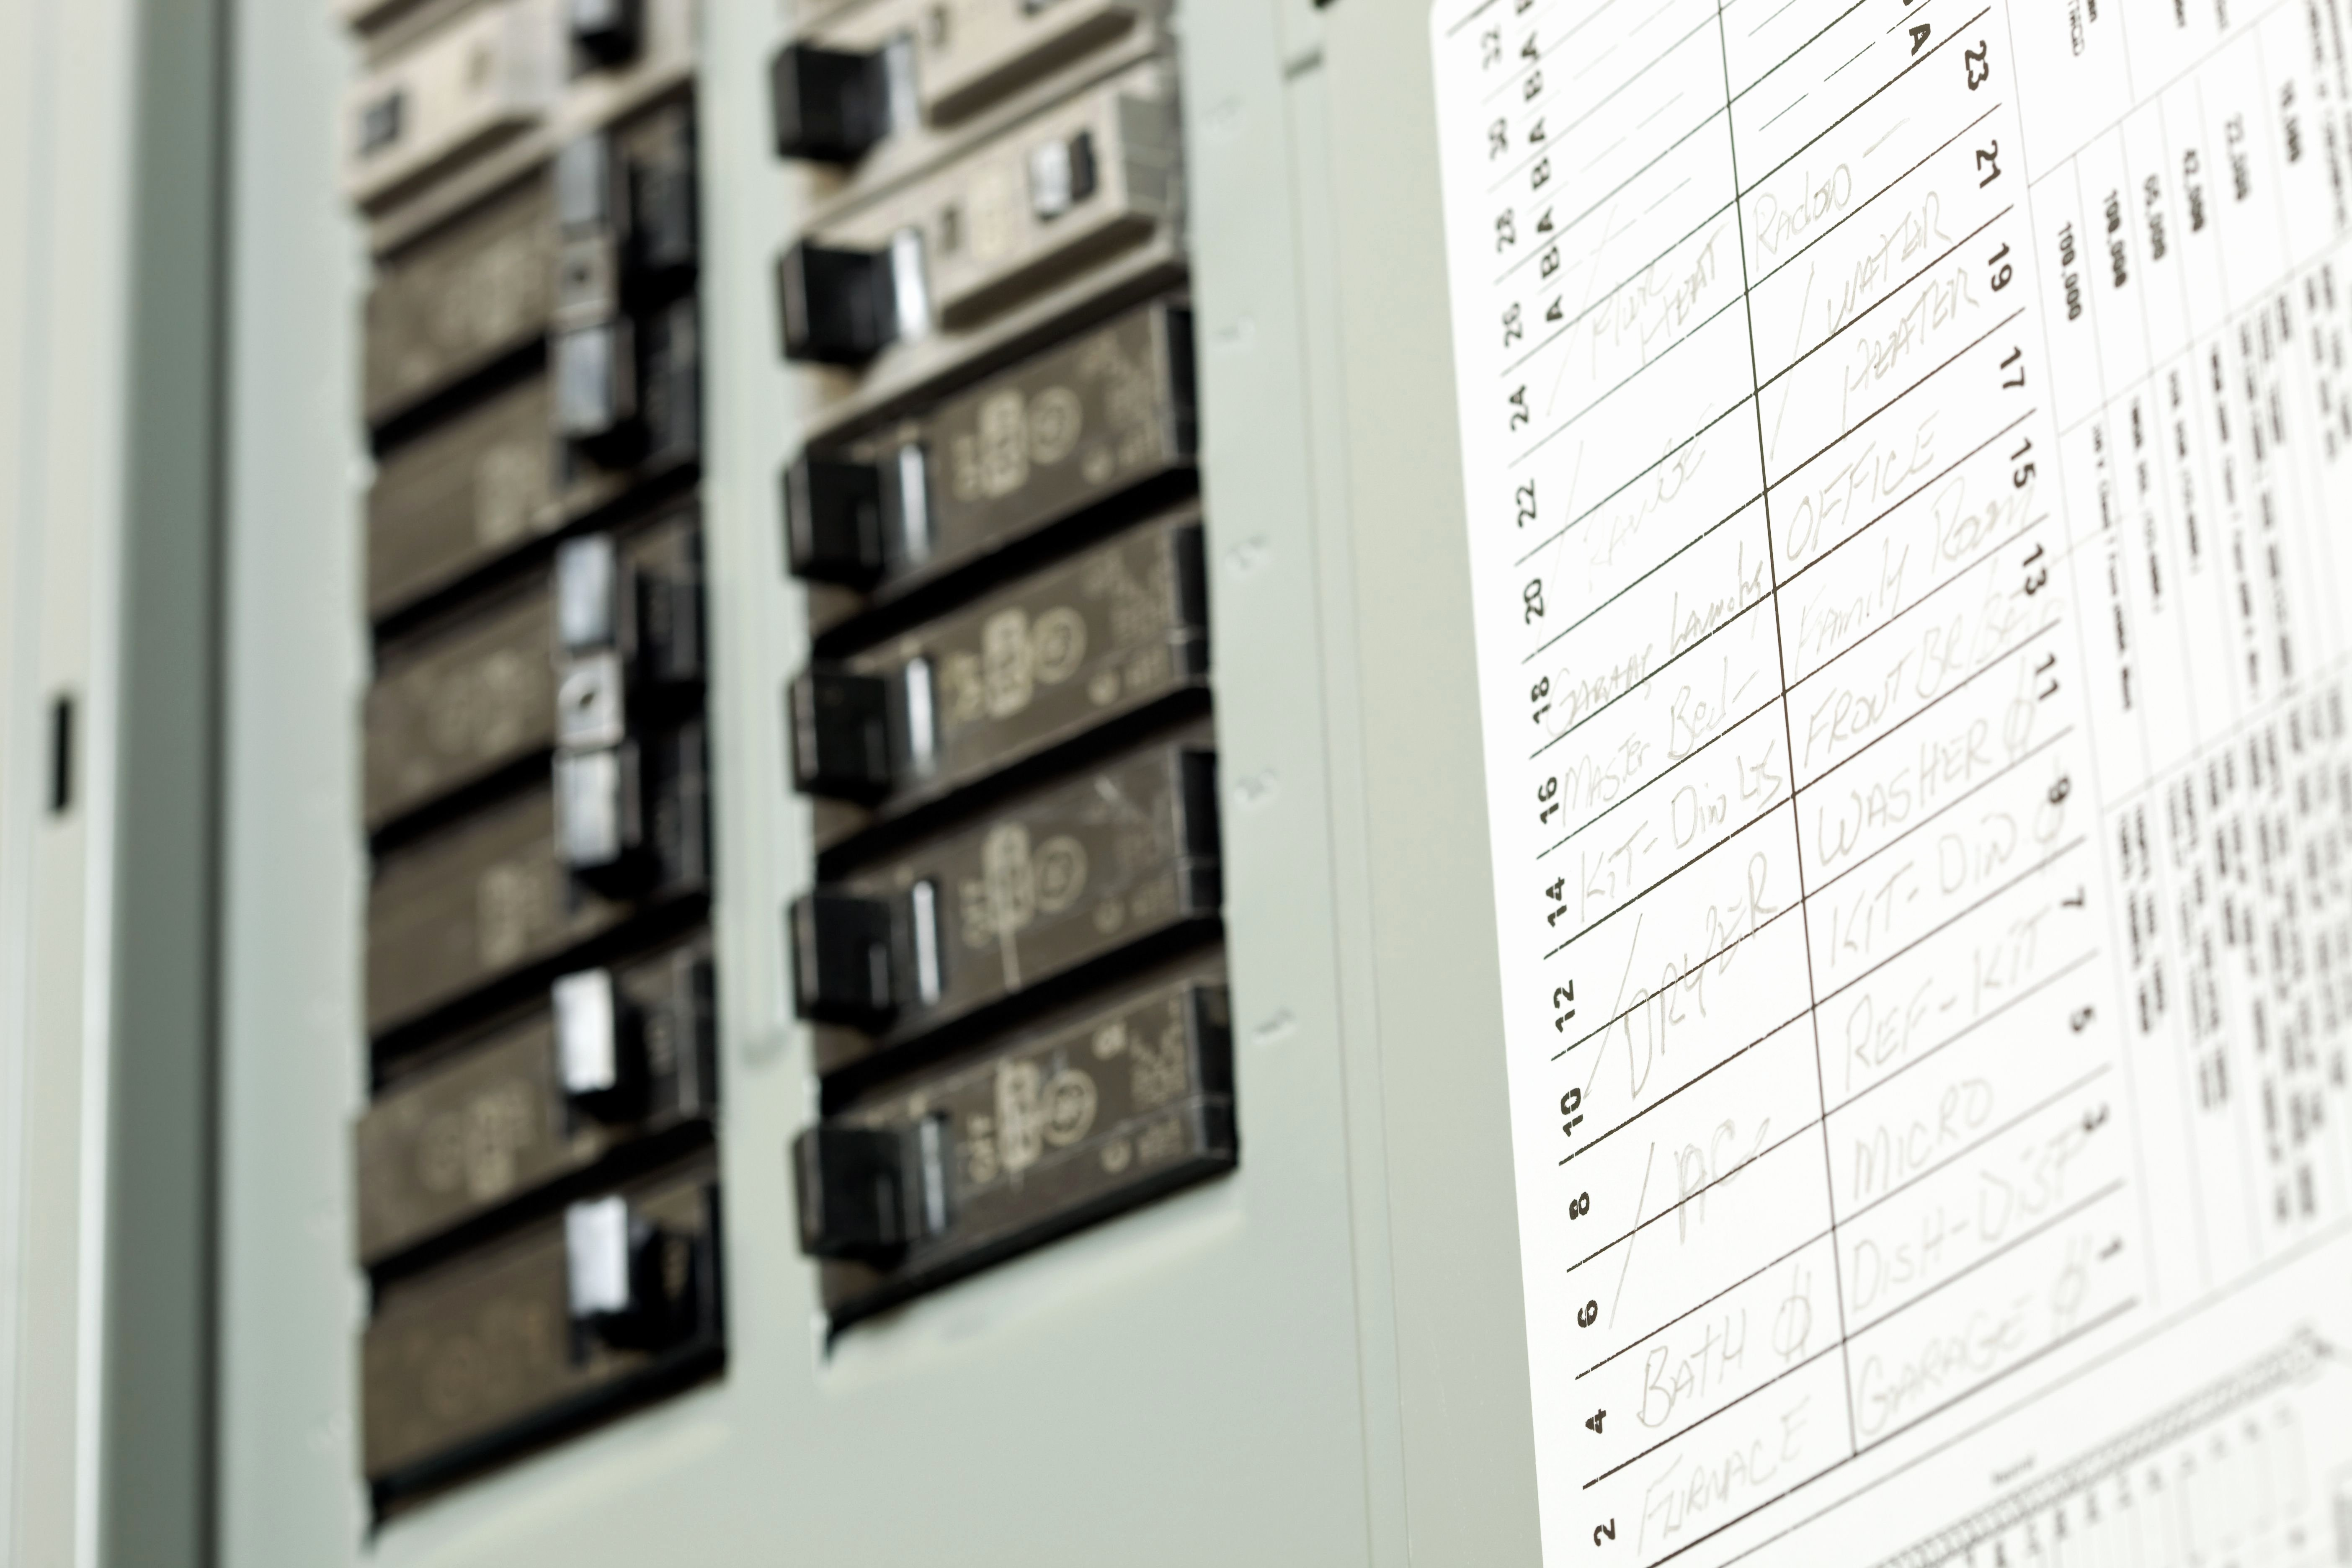 Electrical Panel Circuit Directory Template Beautiful Creating A Circuit Directory Labeling Circuit Breakers